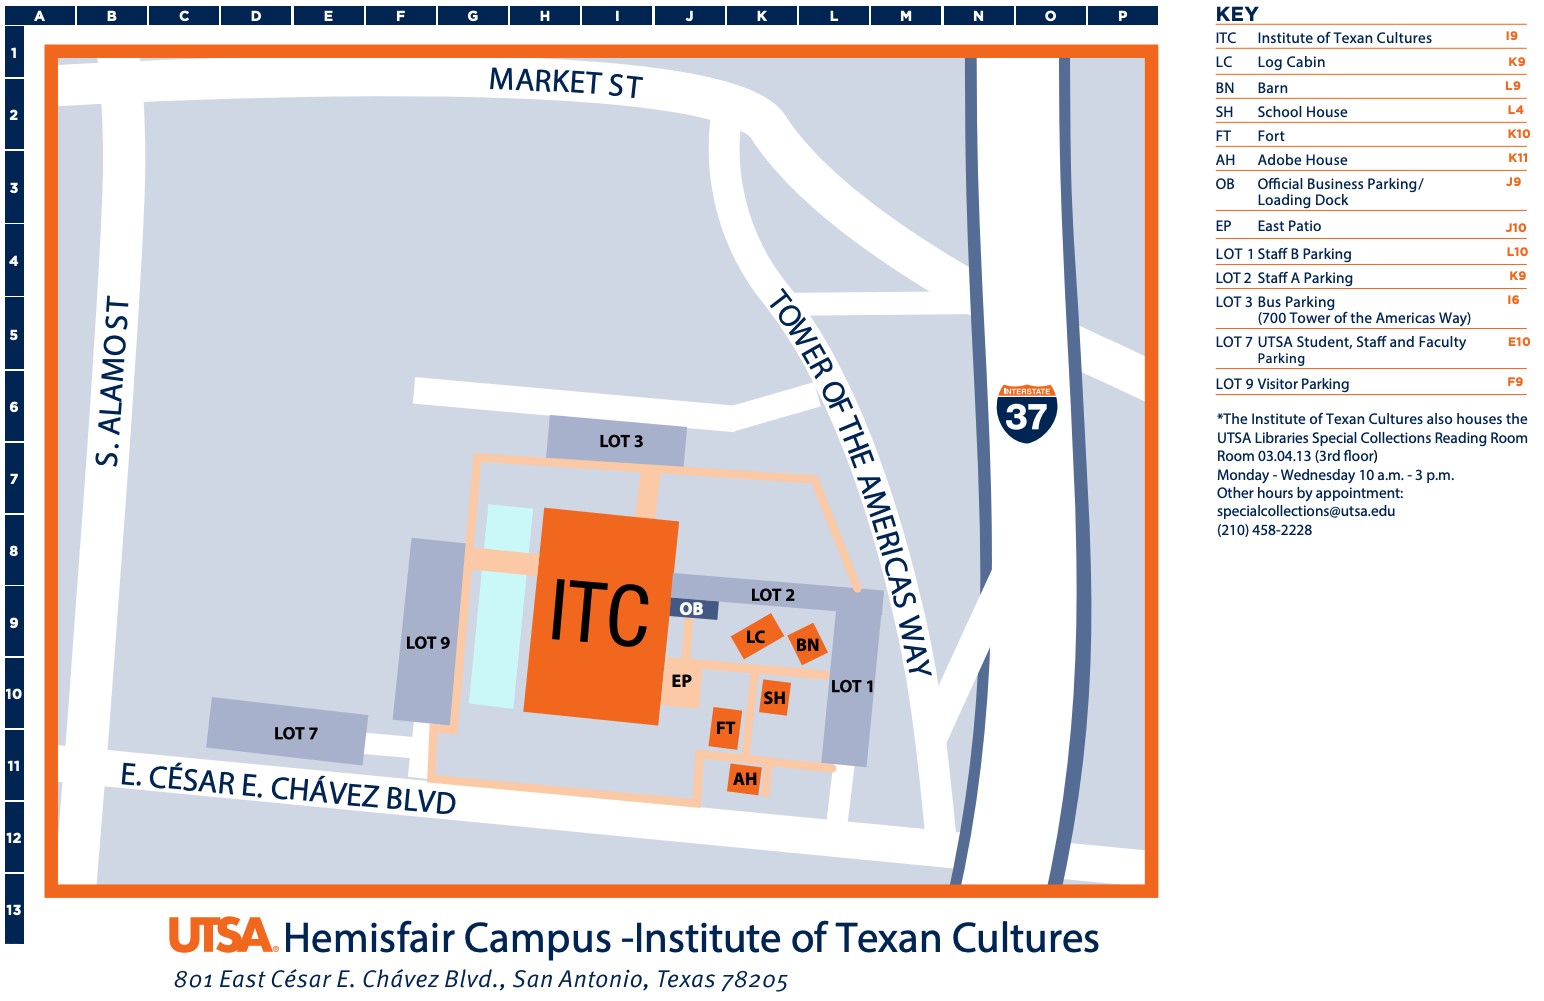 Hemisfair Campus | UTSA | University of Texas at San Antonio on santa barbara bus map, shenzhen bus map, wisconsin bus map, old san juan bus map, california bus map, sitka bus map, mobile bus map, grapevine bus map, louisville bus map, santa rosa bus map, brazos river texas lakes map, racine bus map, houston bus map, chapel hill bus map, dayton bus map, austin bus map, salt lake city bus map, utah bus map, st paul bus map, santa ana bus map,